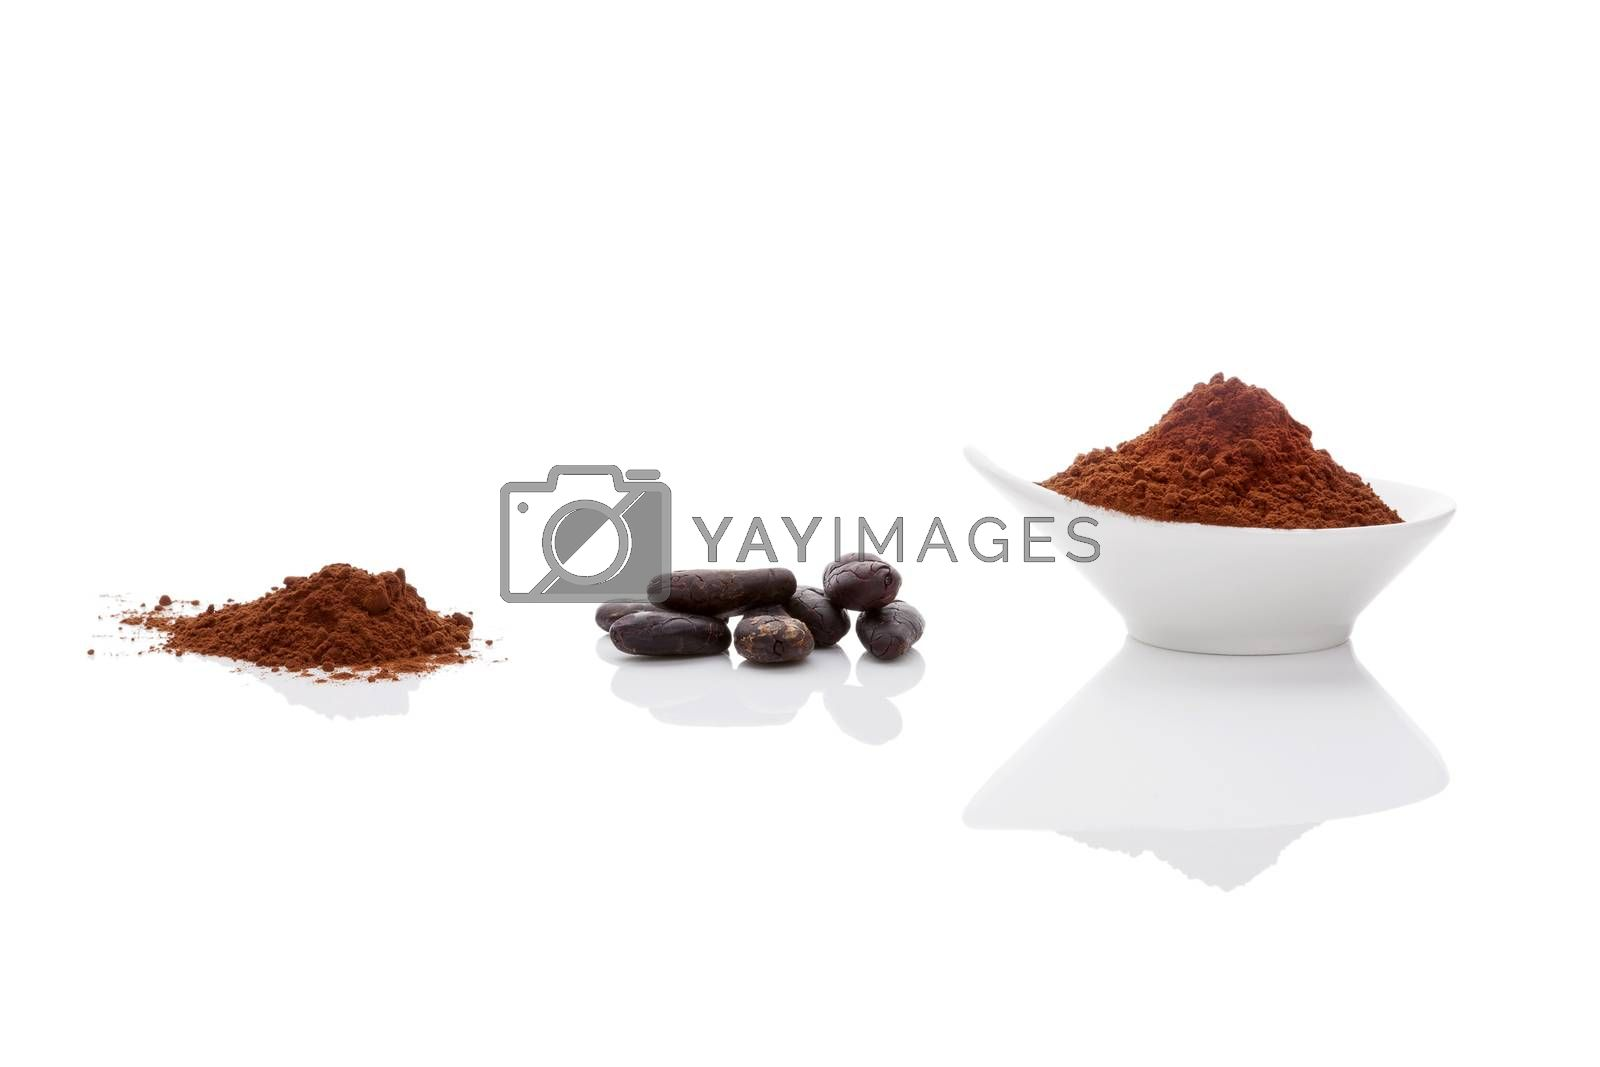 Cocoa beans and cocoa powder on white background. Healthy superfood.